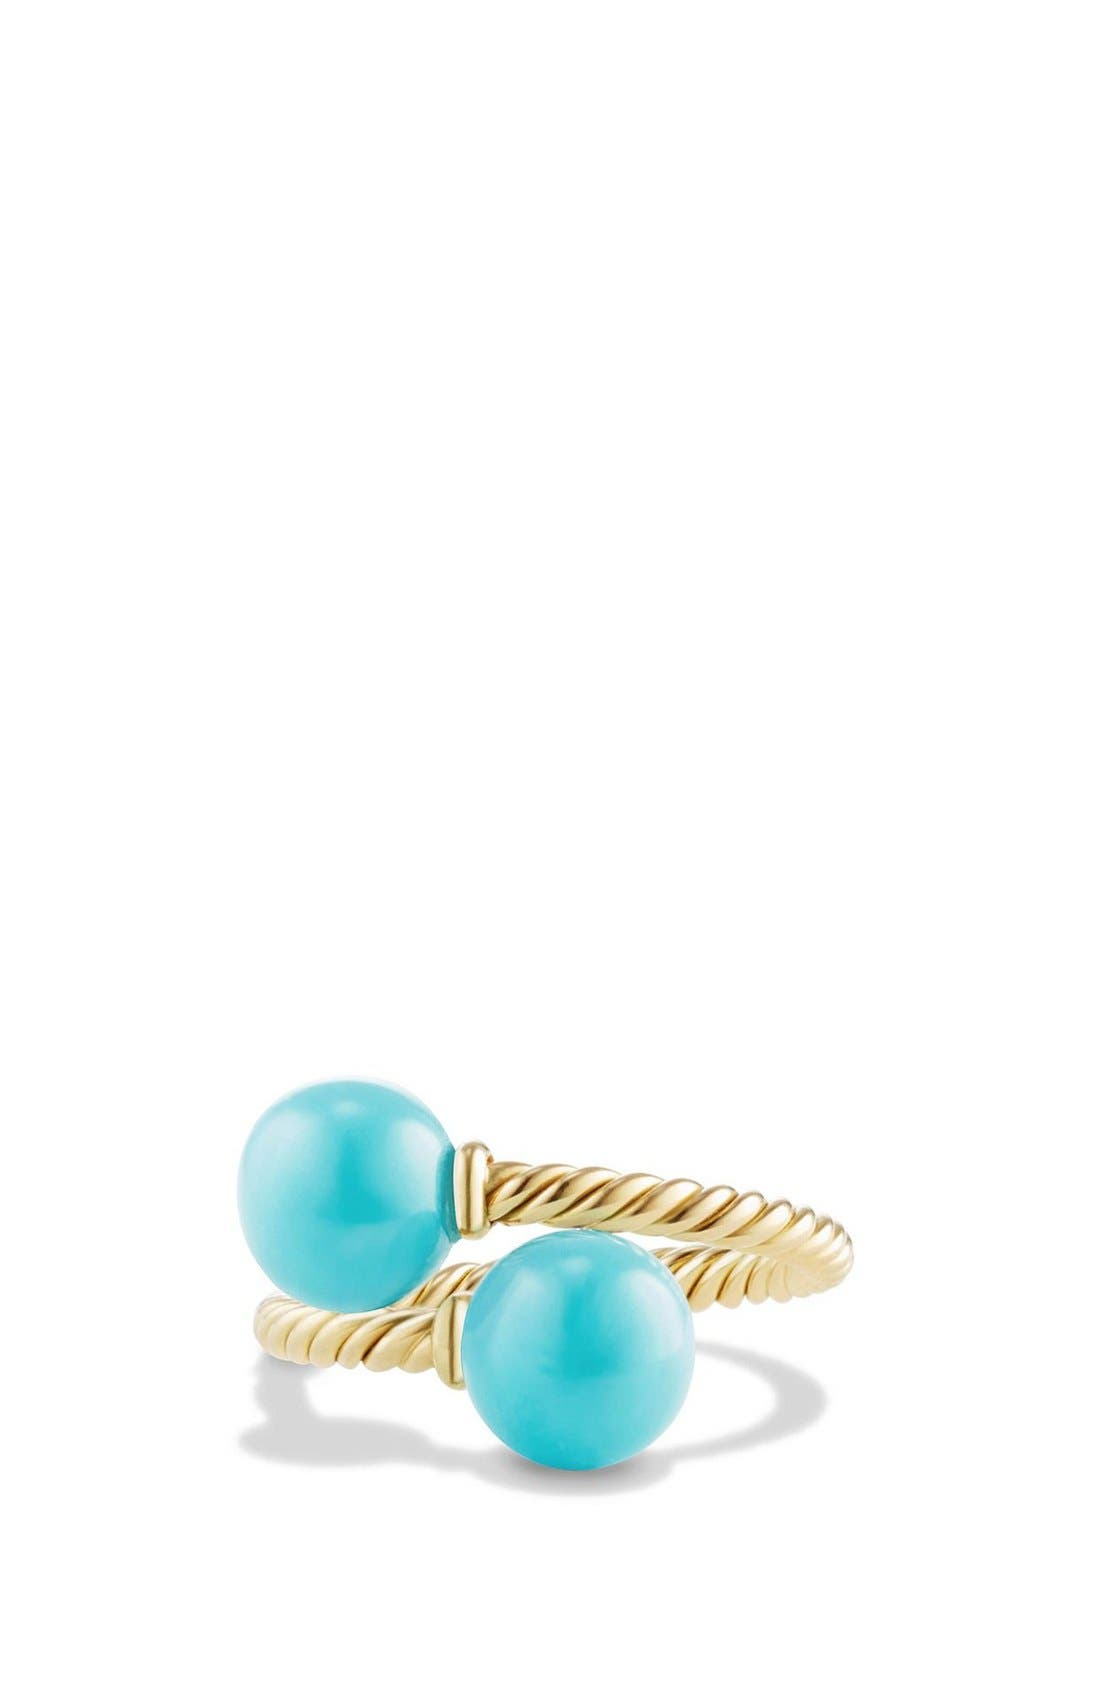 Main Image - David Yurman 'Solari' Bead Ring with Turquoise in 18K Gold